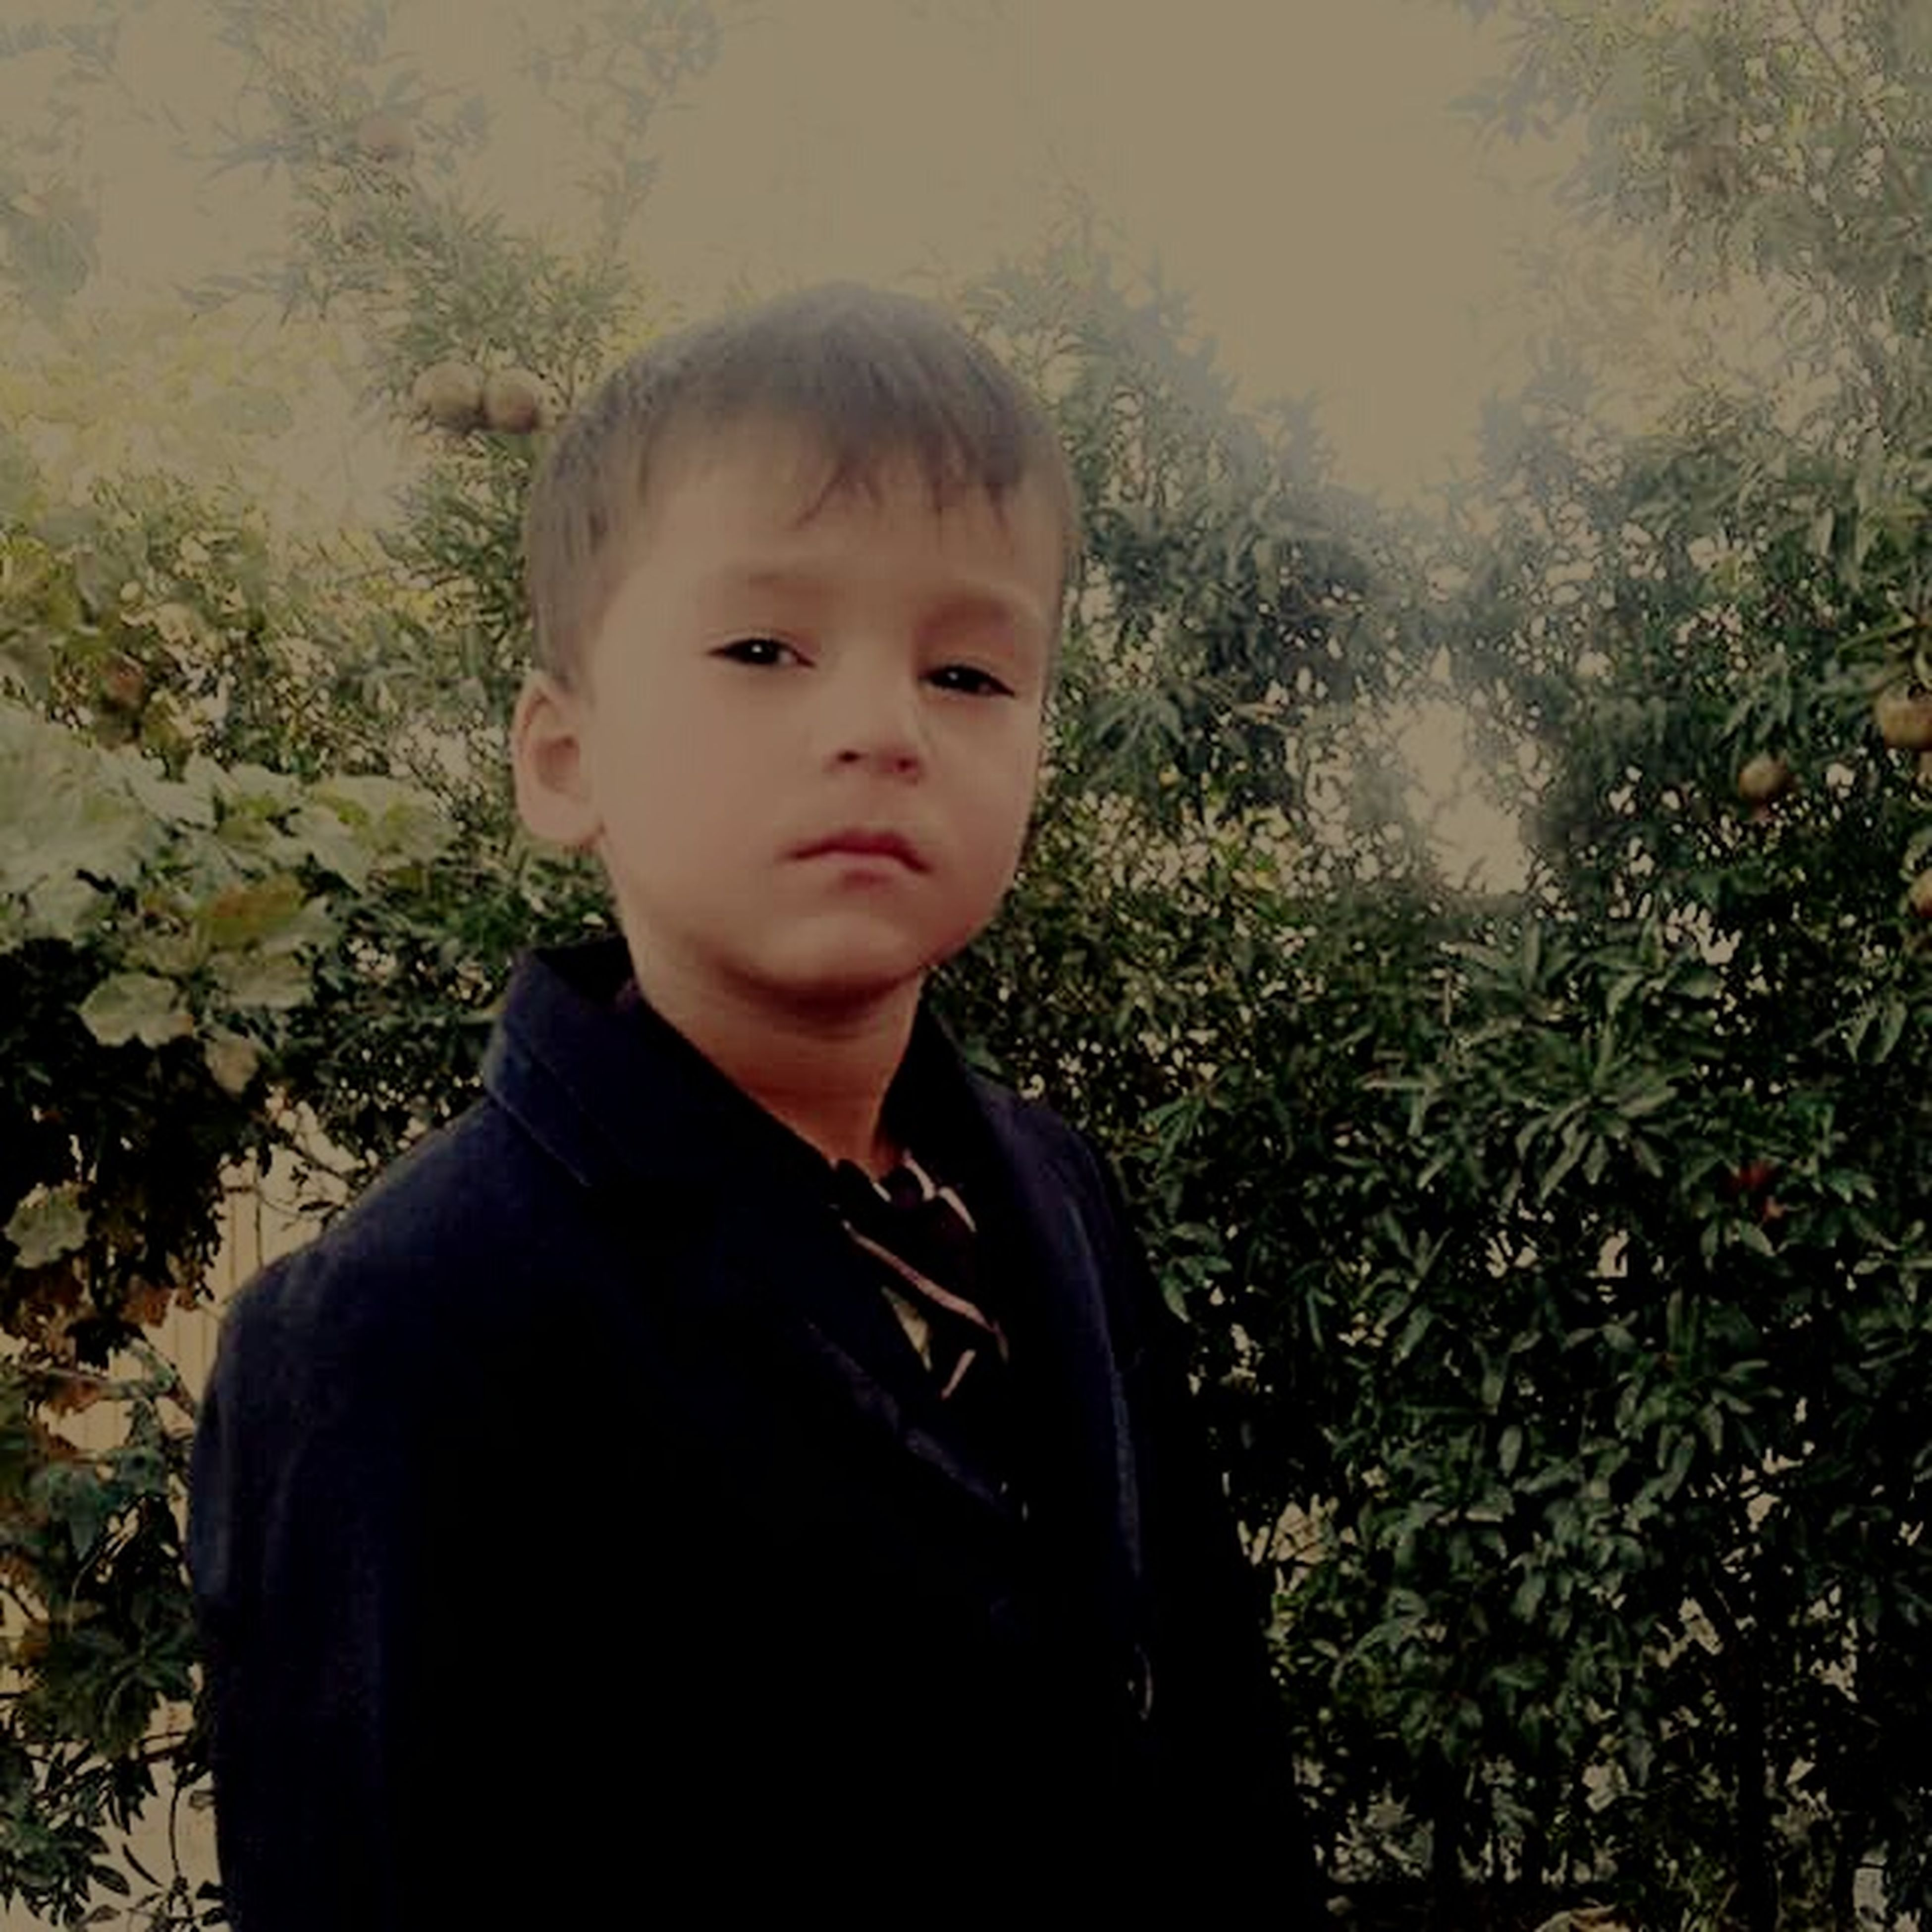 child, males, childhood, one boy only, boys, children only, looking at camera, front view, portrait, one person, people, nature, outdoors, close-up, day